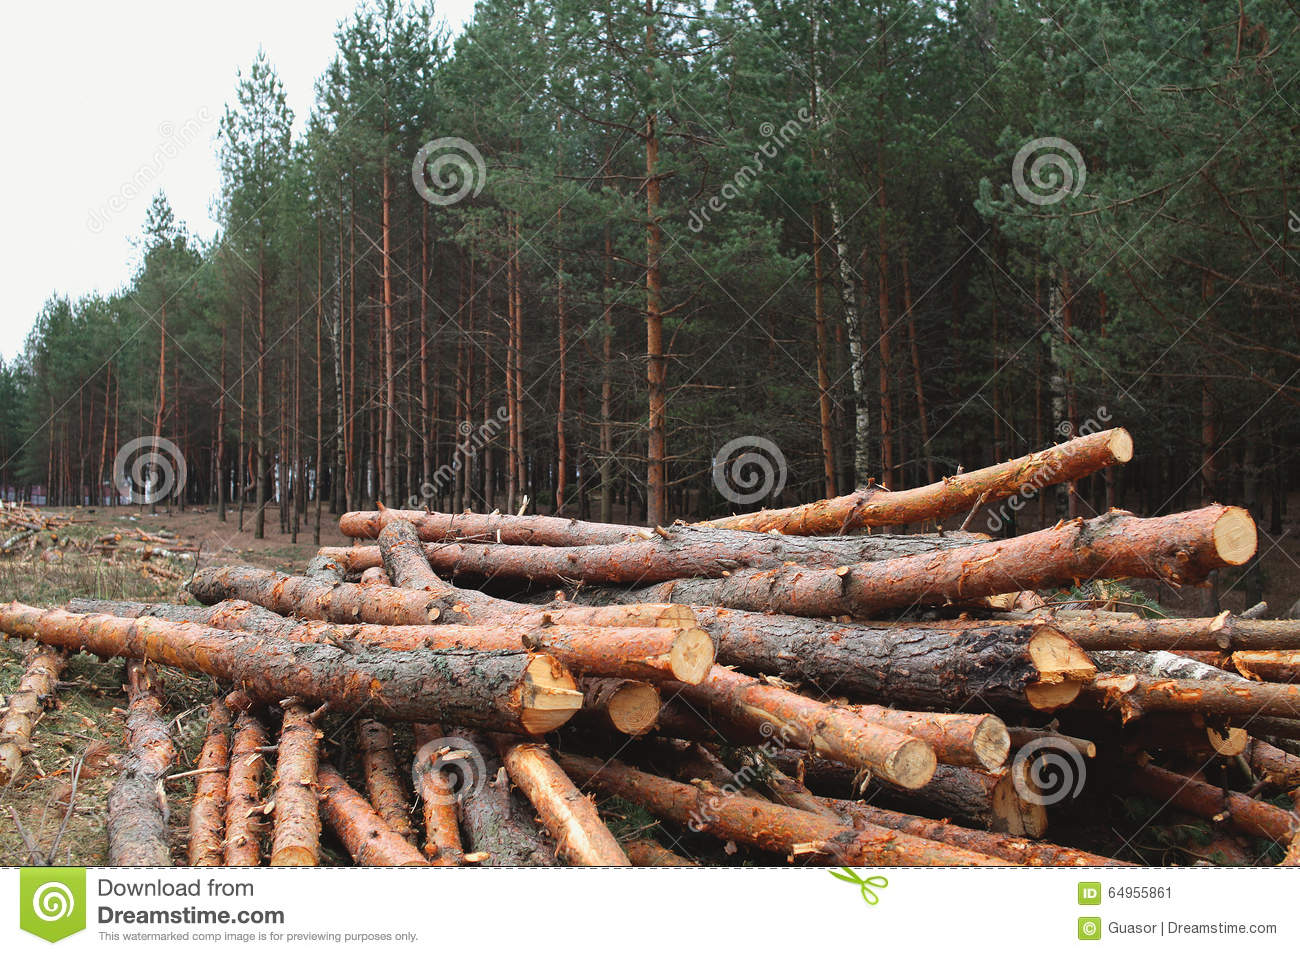 Nature Images 2mb: Environment, Nature And Deforestation Forest